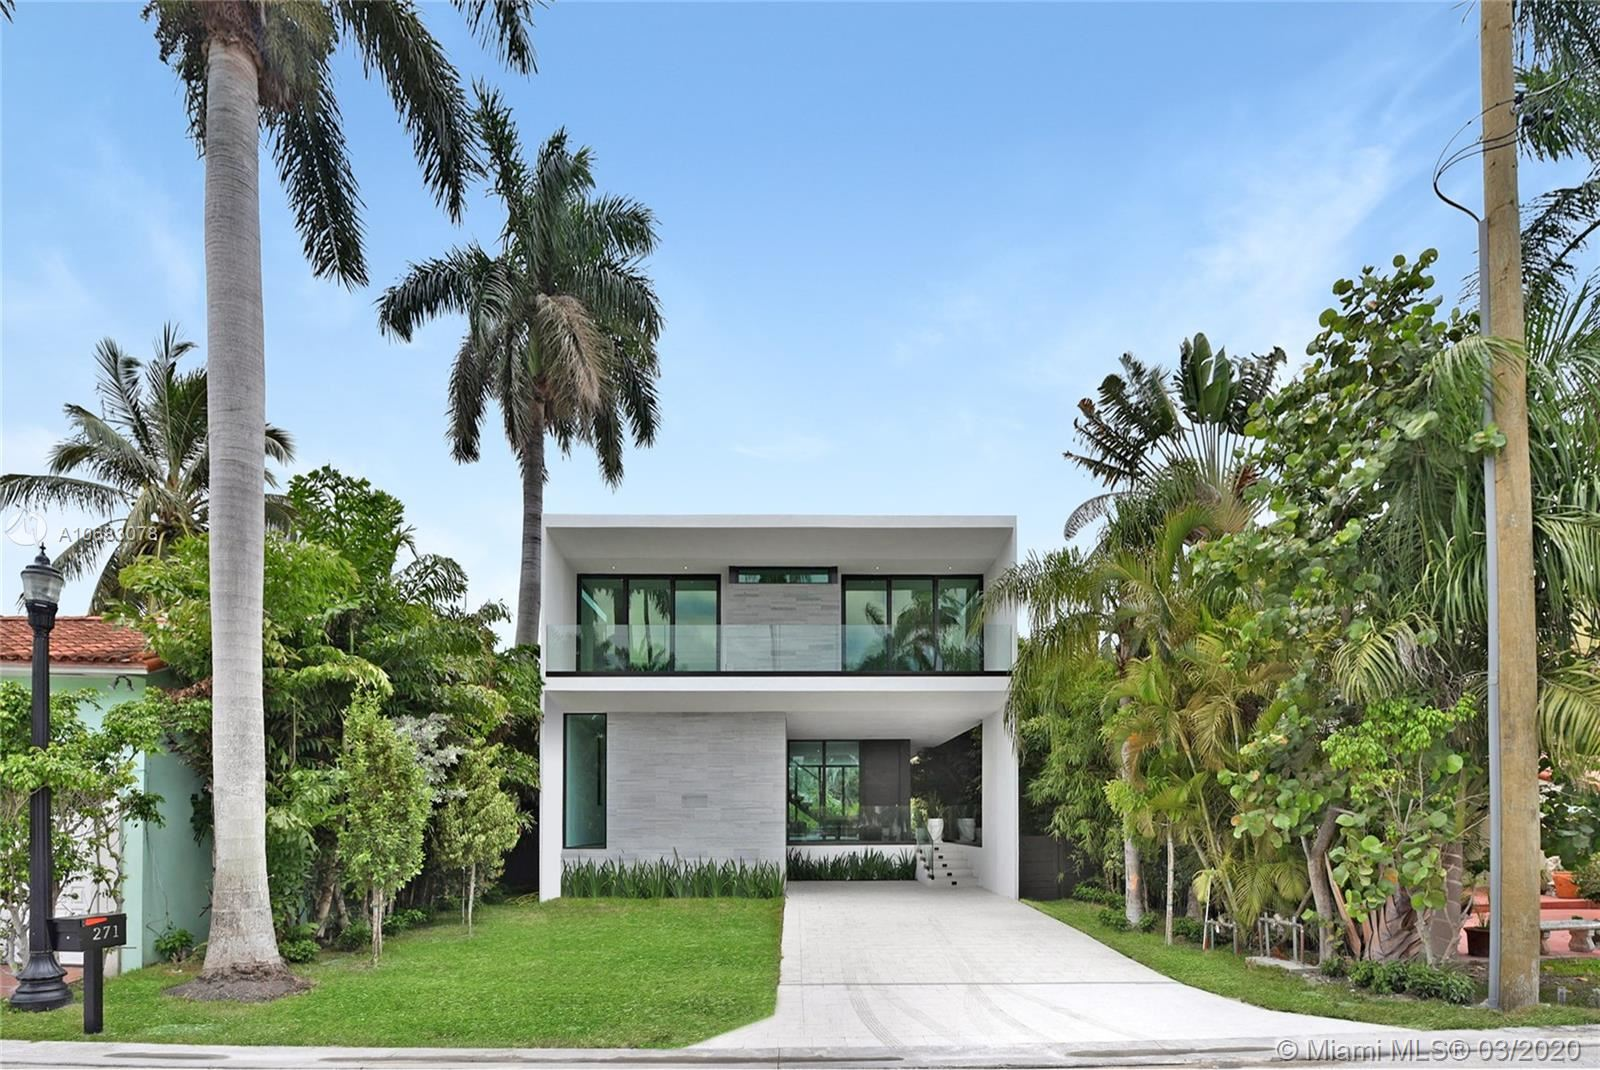 Photo 23 of Listing MLS a10683078 in 272 Palm Ave Miami Beach FL 33139